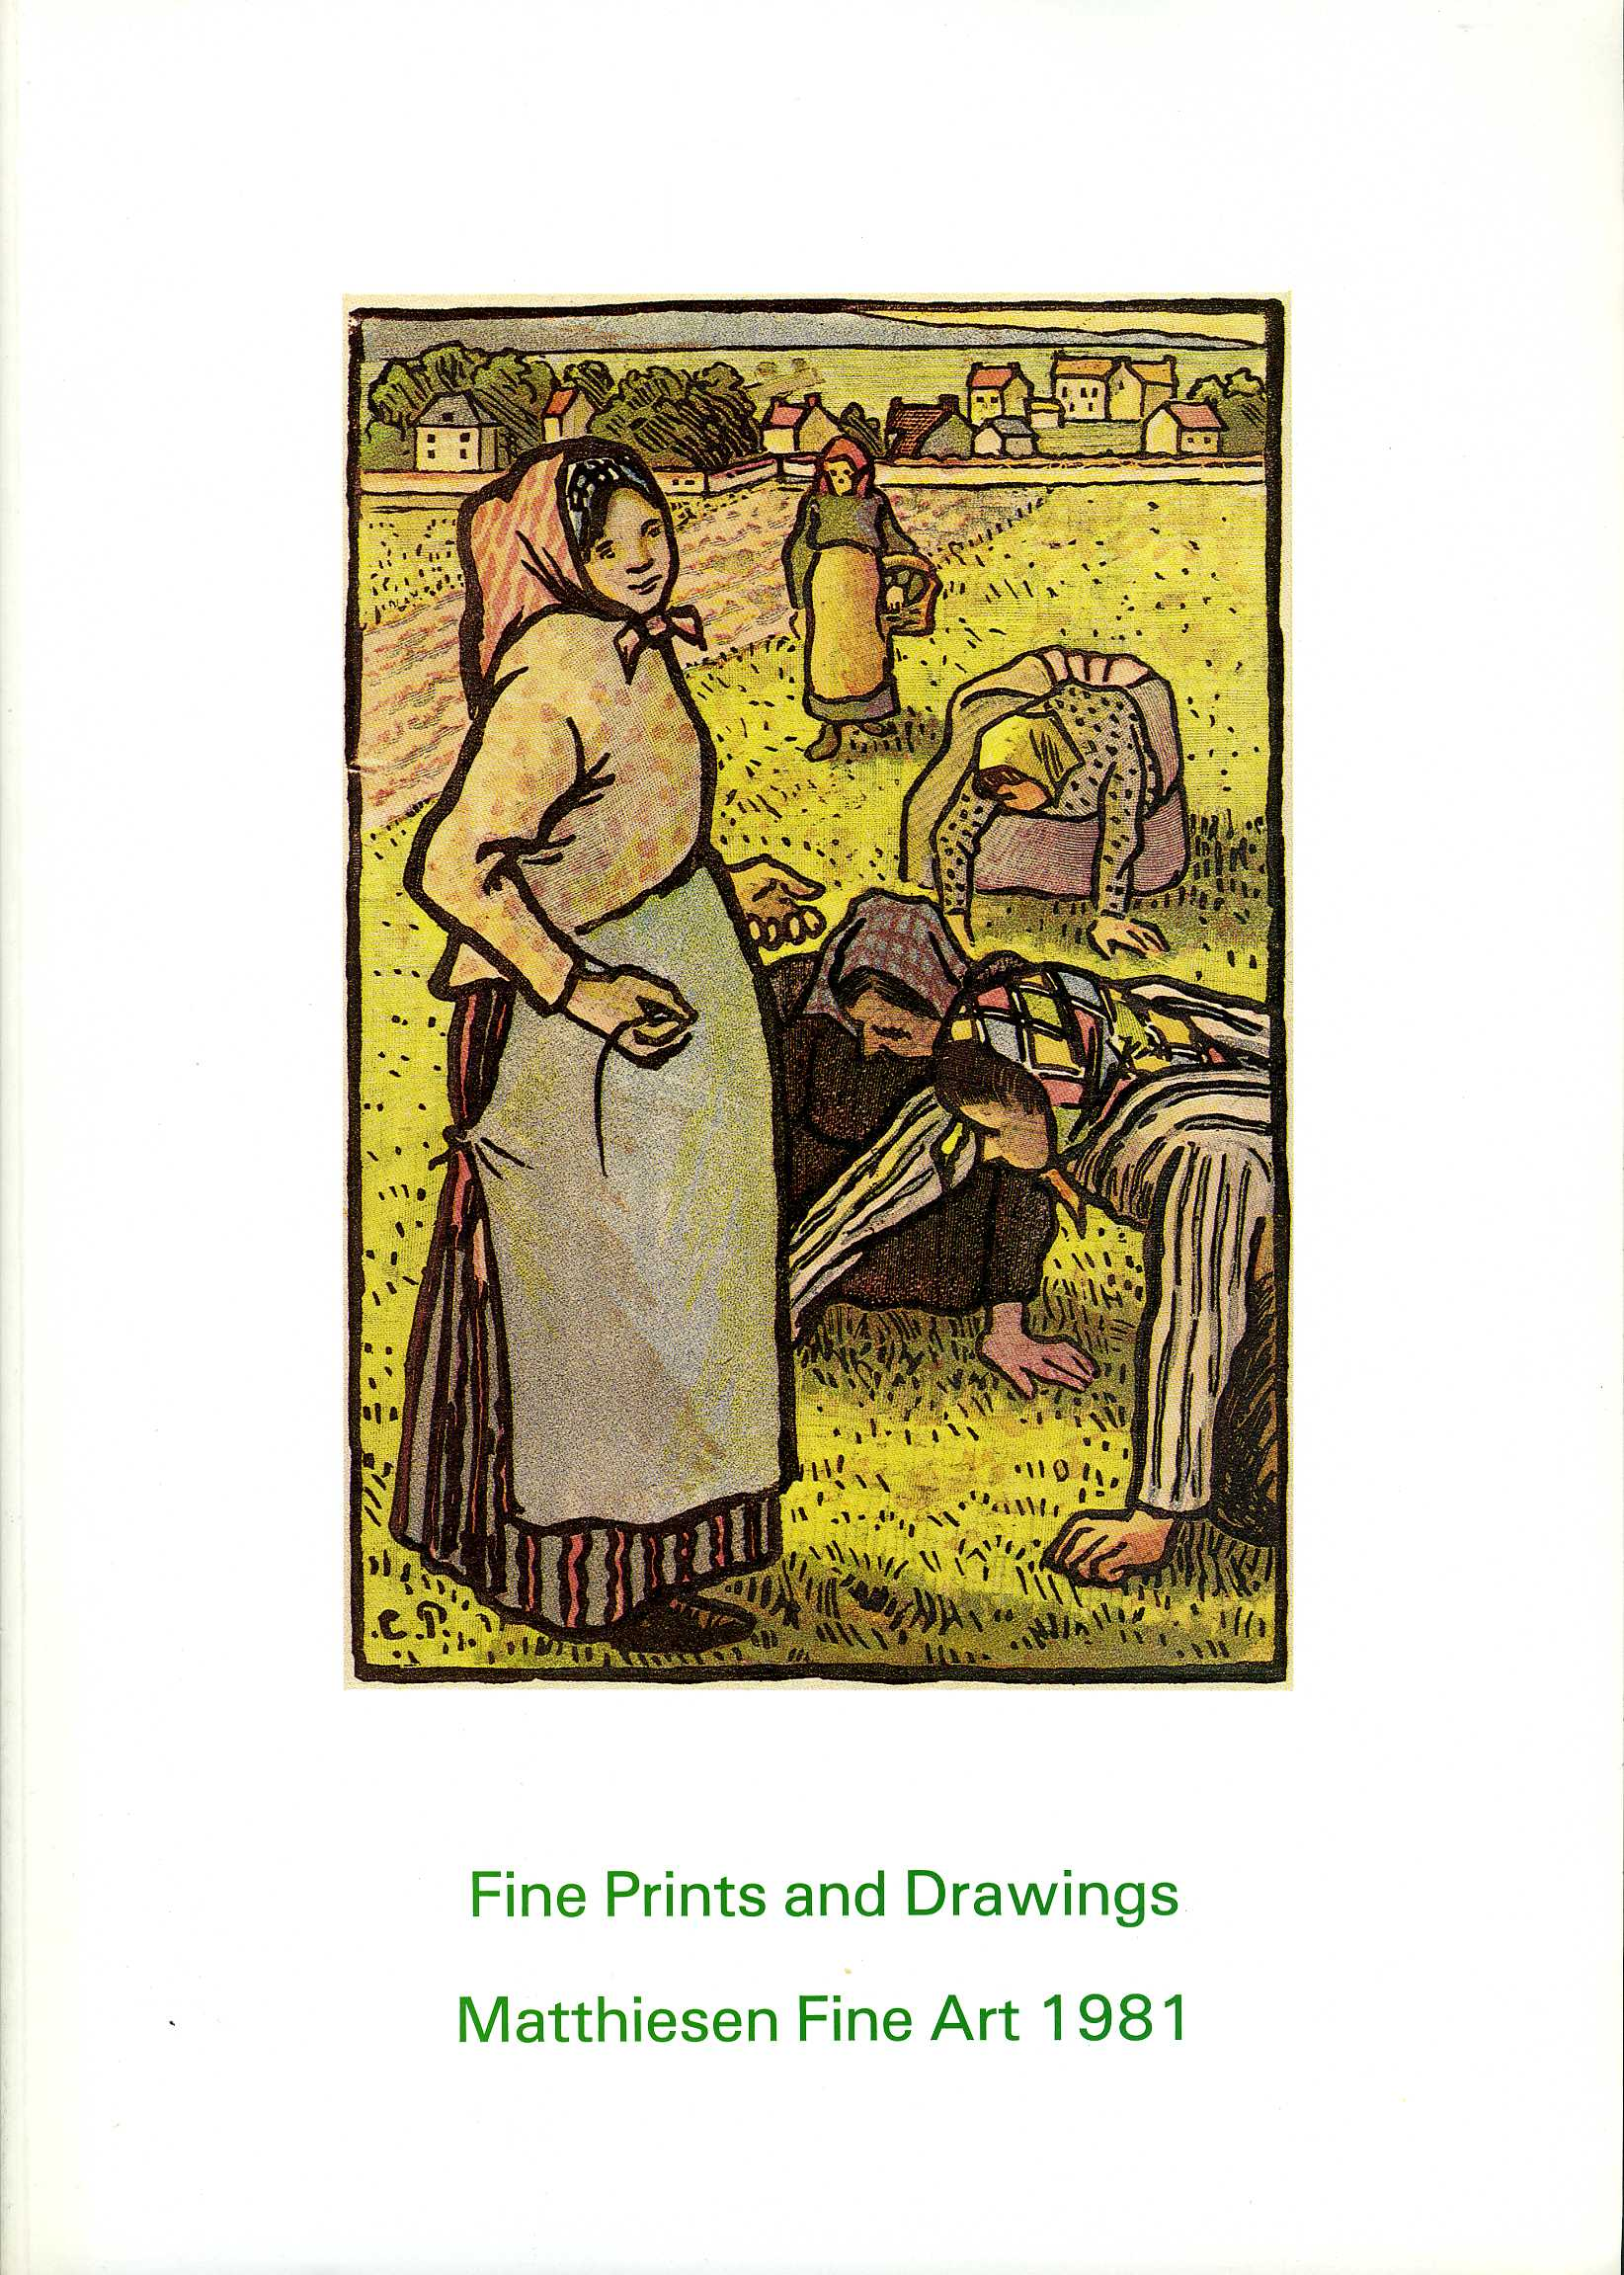 1981-Fine Prints and Drawings: England, America and Europe.